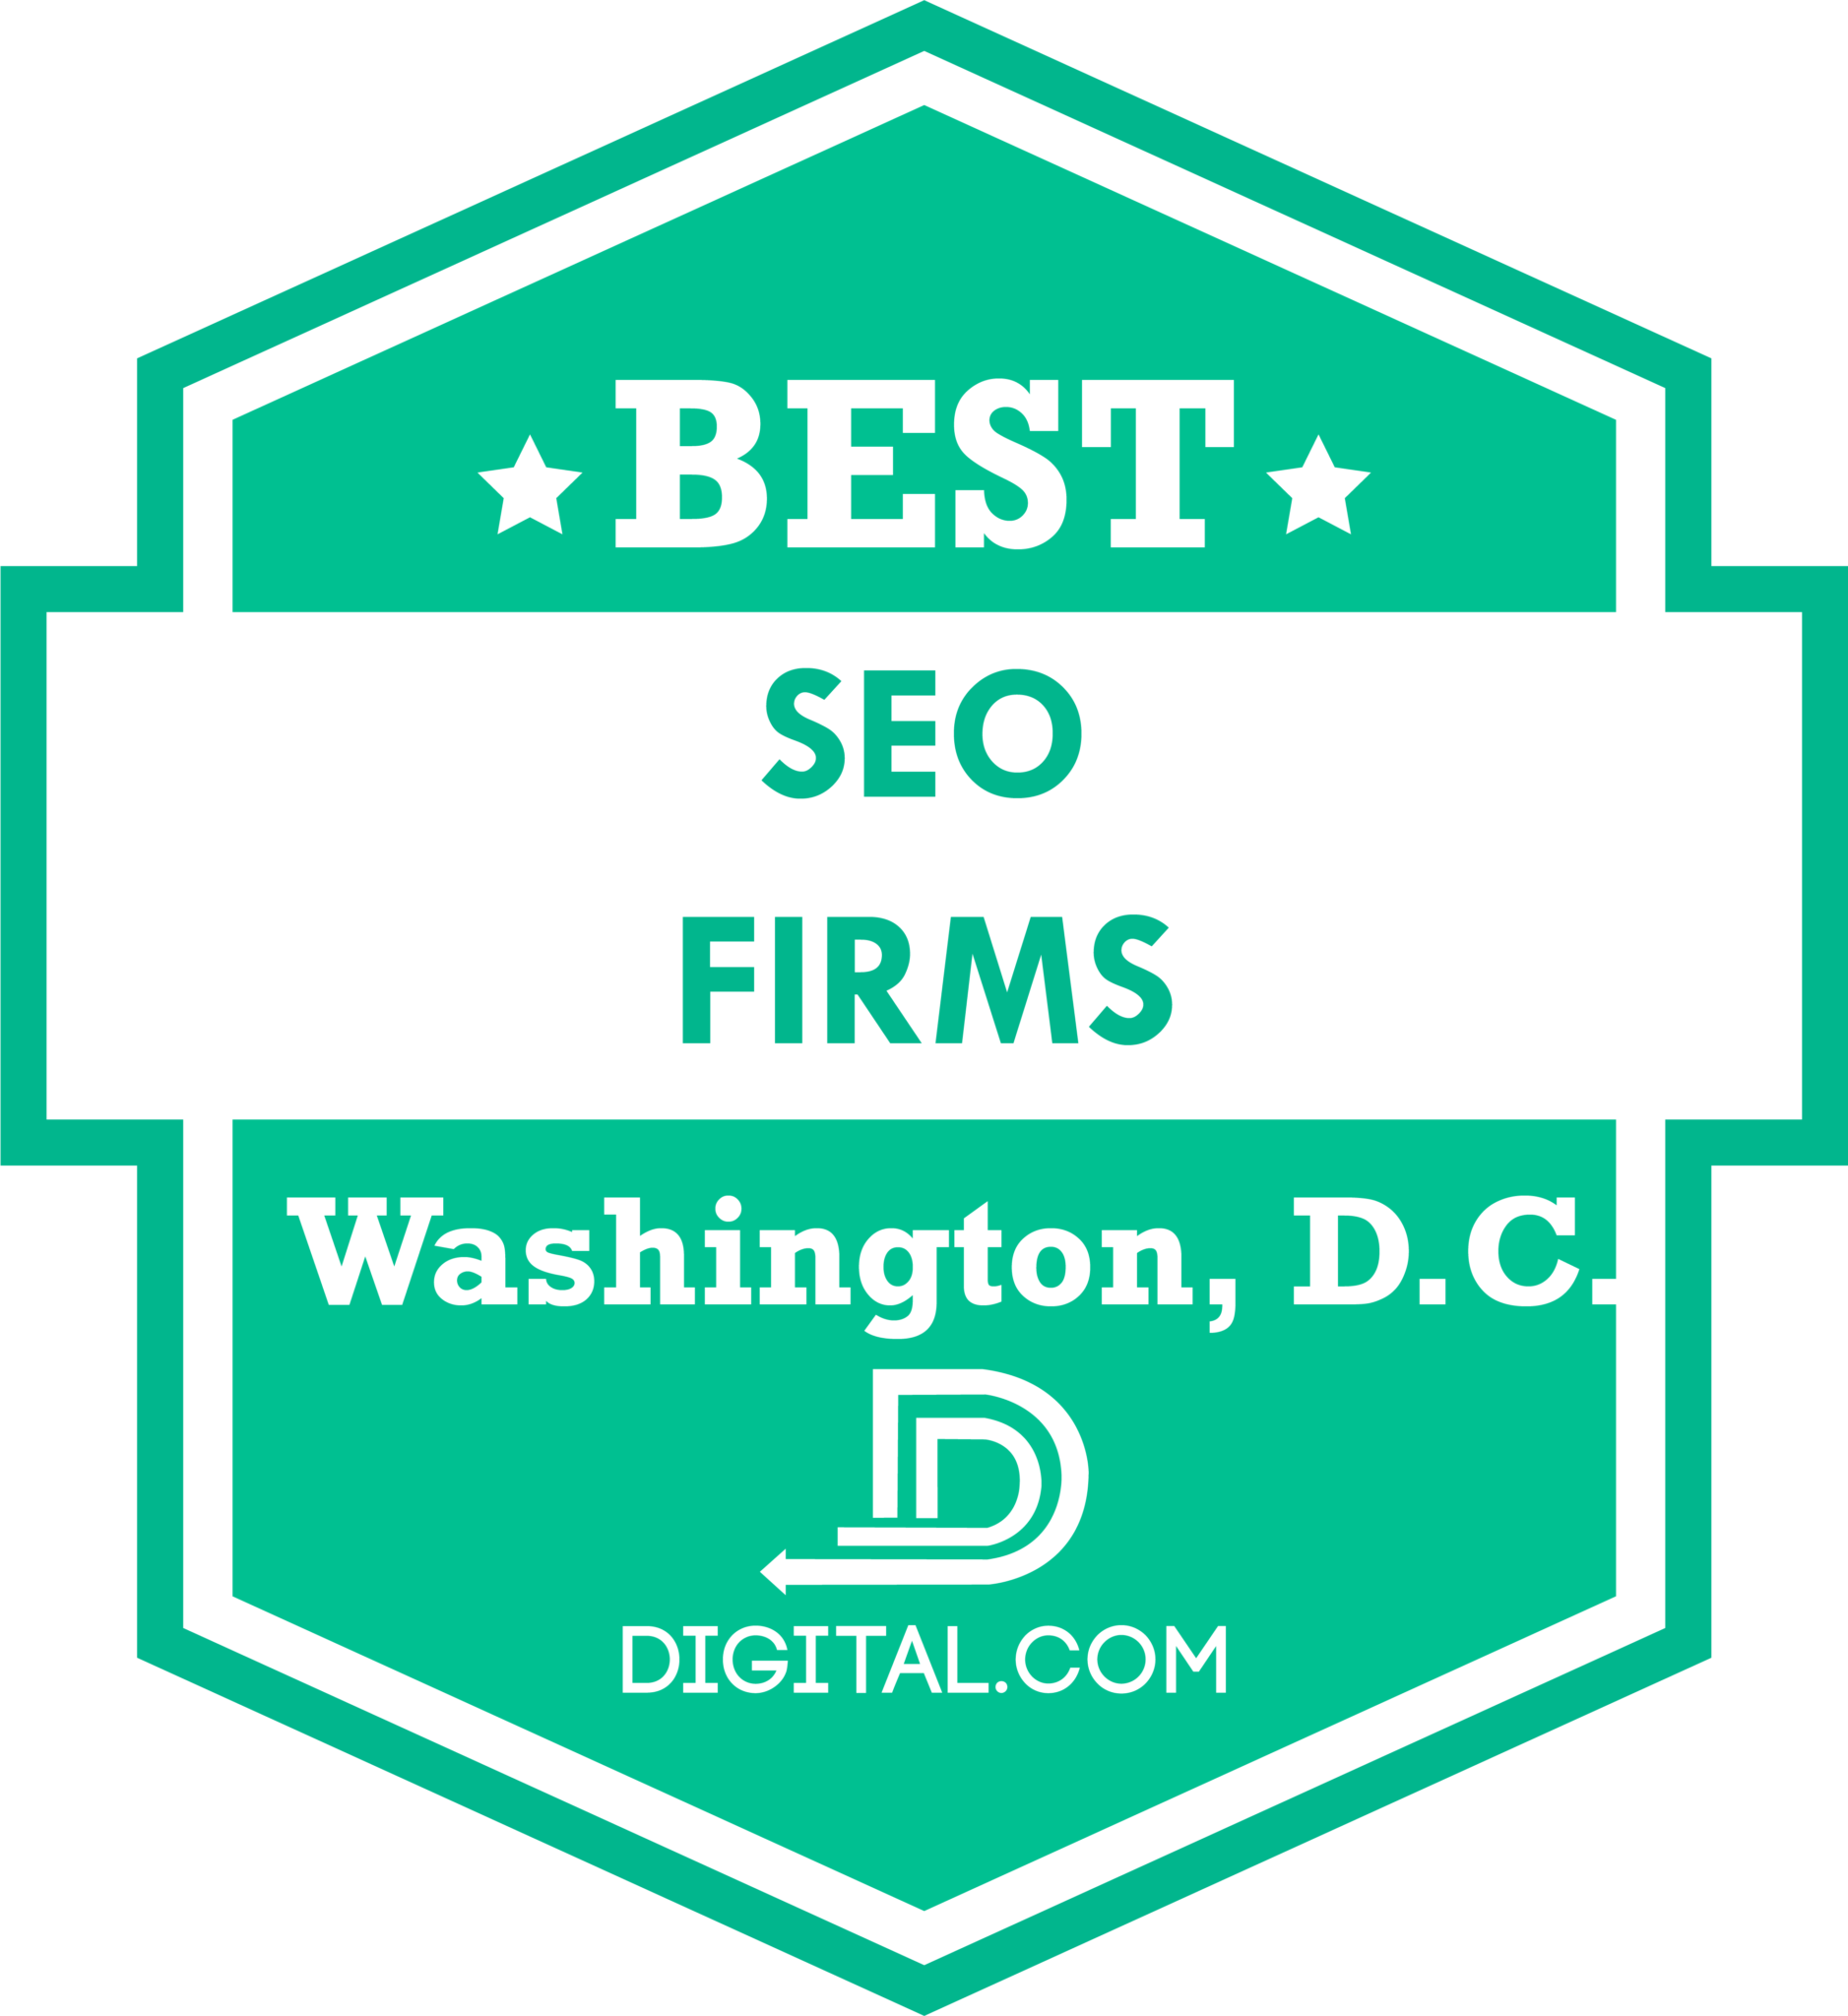 The-Best-SEO-Firms-in-Washington-DC-Badge